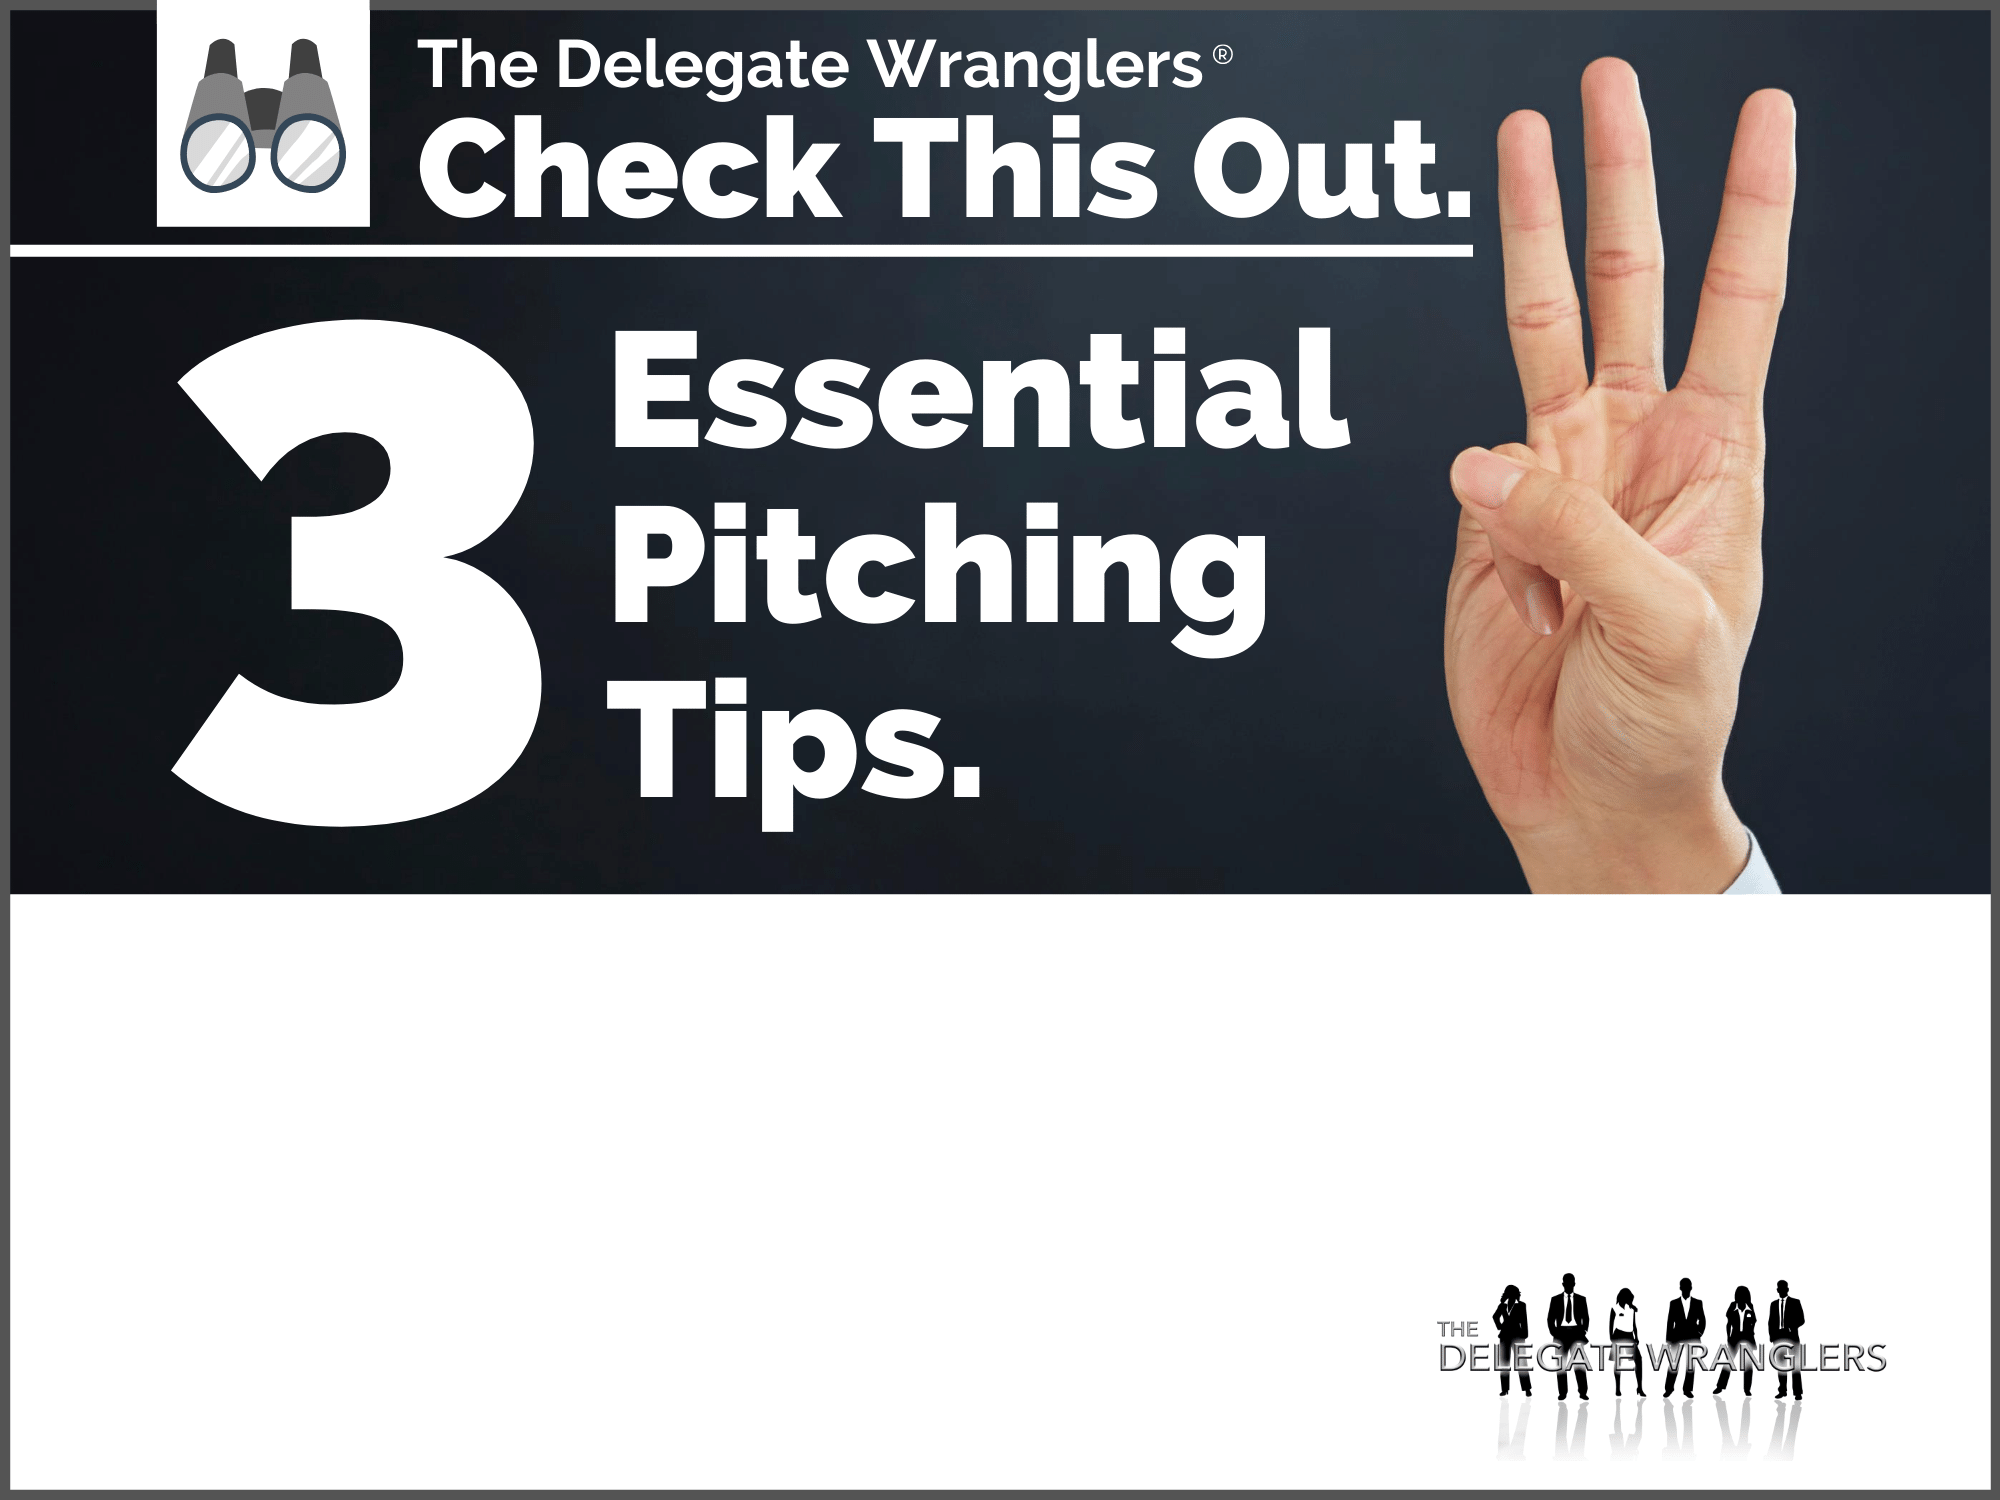 3 Essential Pitching Tips